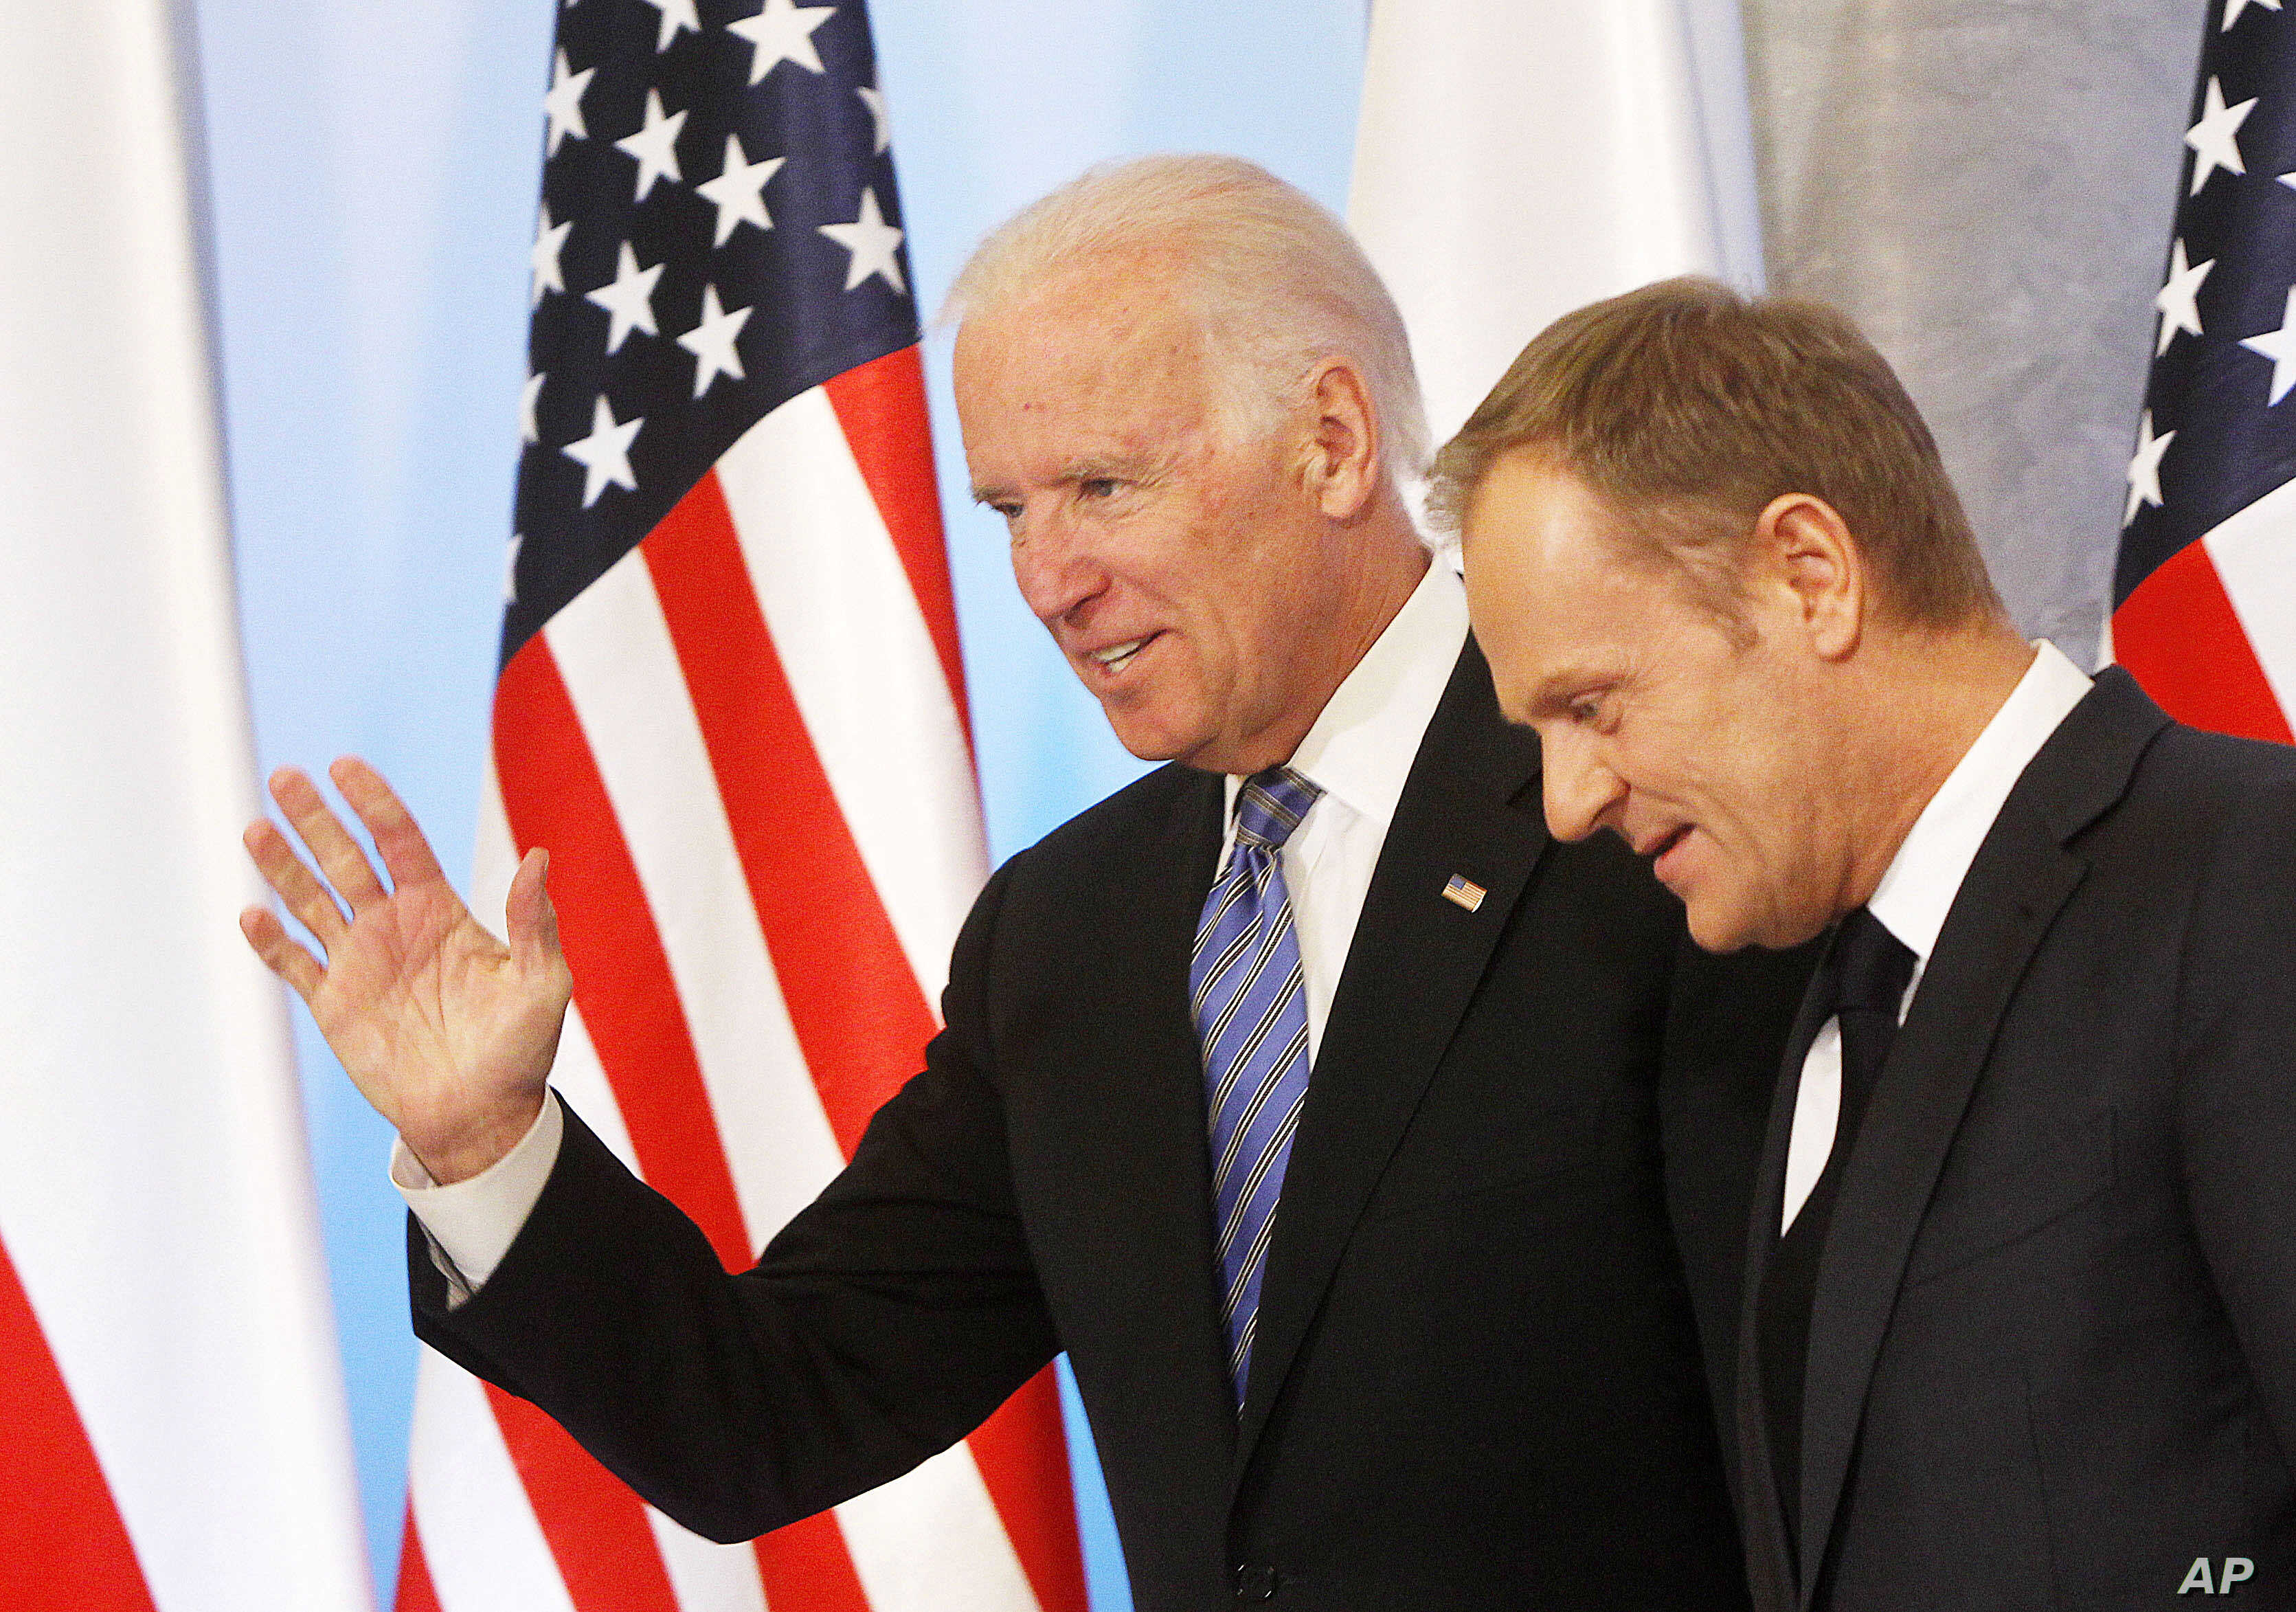 U.S. Vice President Joe Biden (L) and Poland's Prime Minister Donald Tusk (R), head for talks on Eastern Europe's security, in Warsaw, Poland,  March 18, 2014.